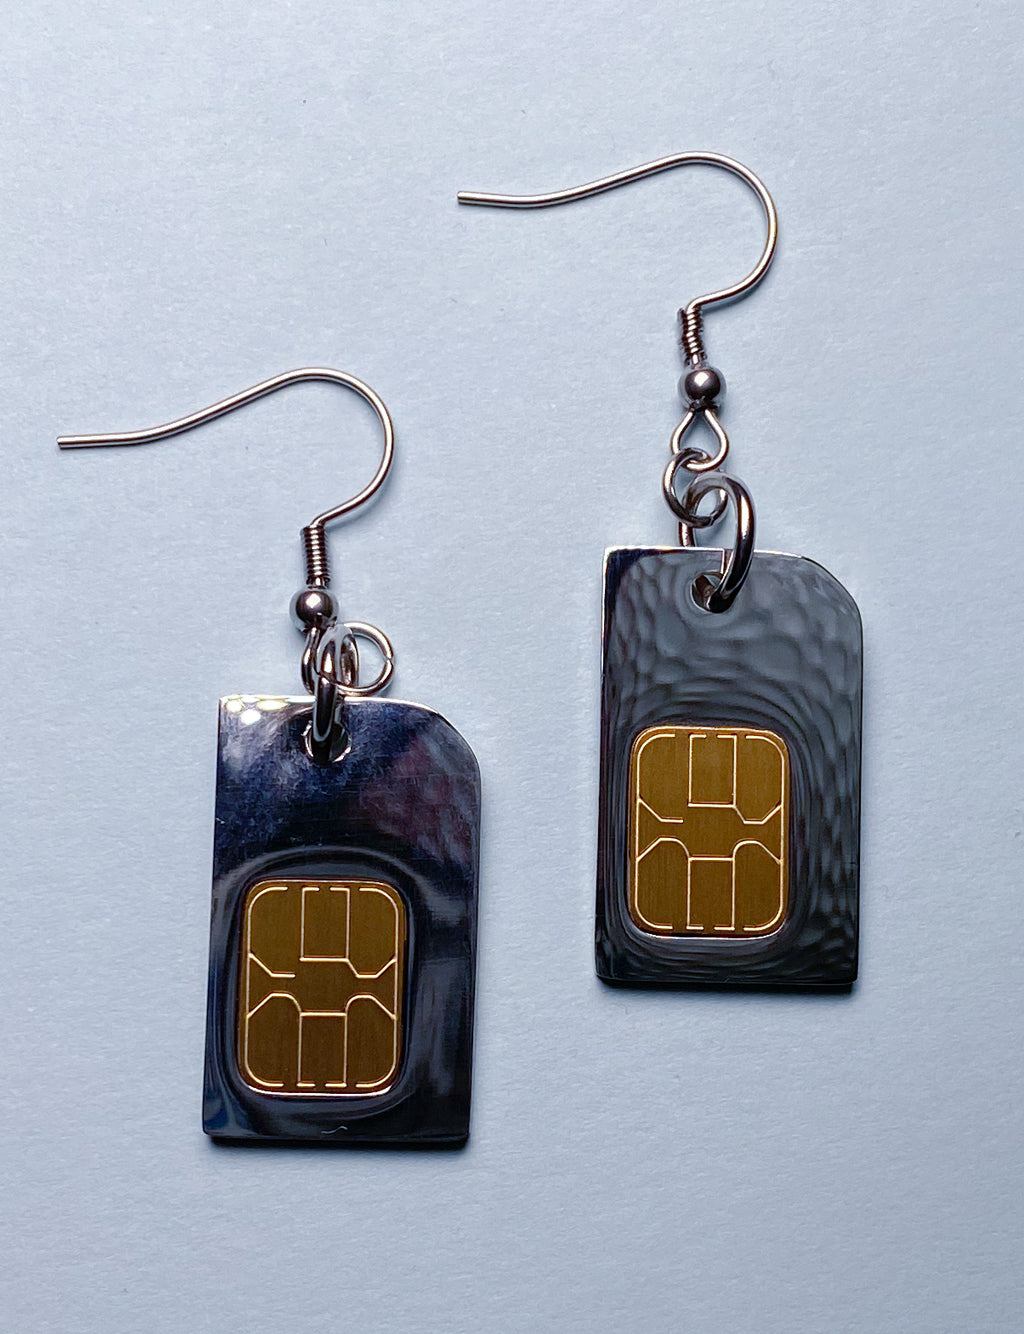 SIM CARD EARRINGS